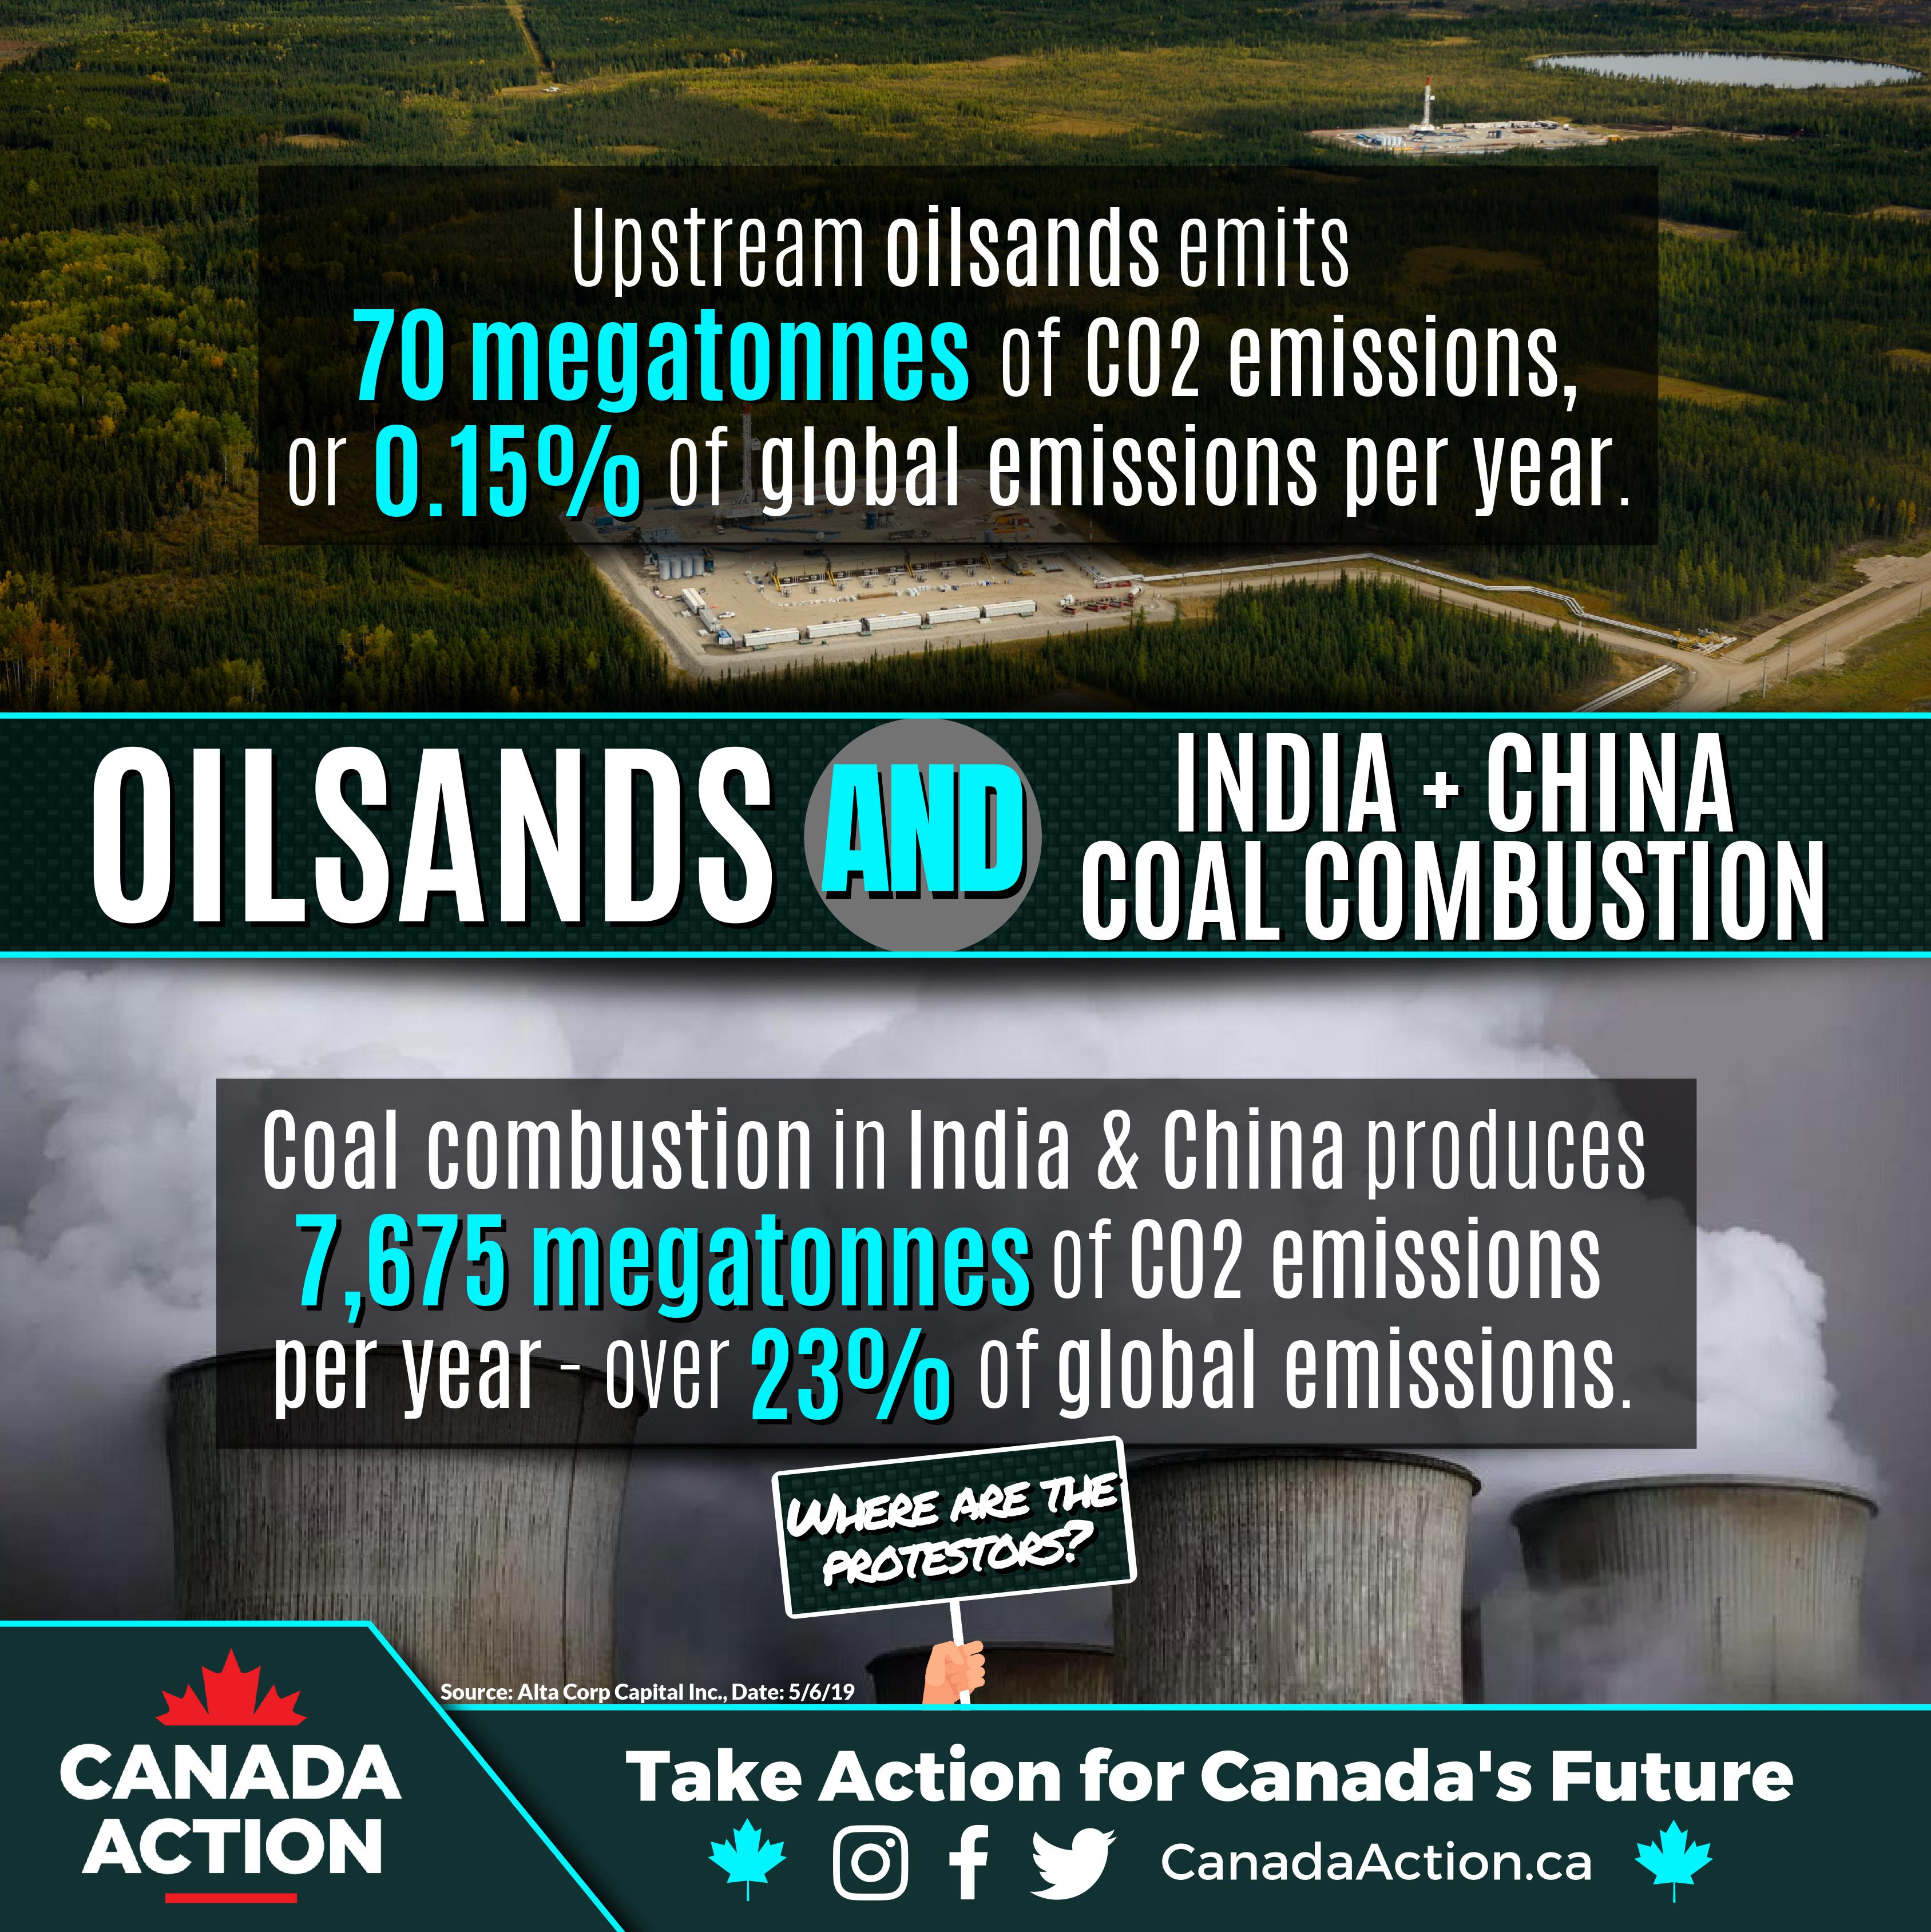 Oil Sands Emissions vs. China + India Coal Combustion Emissions - Alta Corp